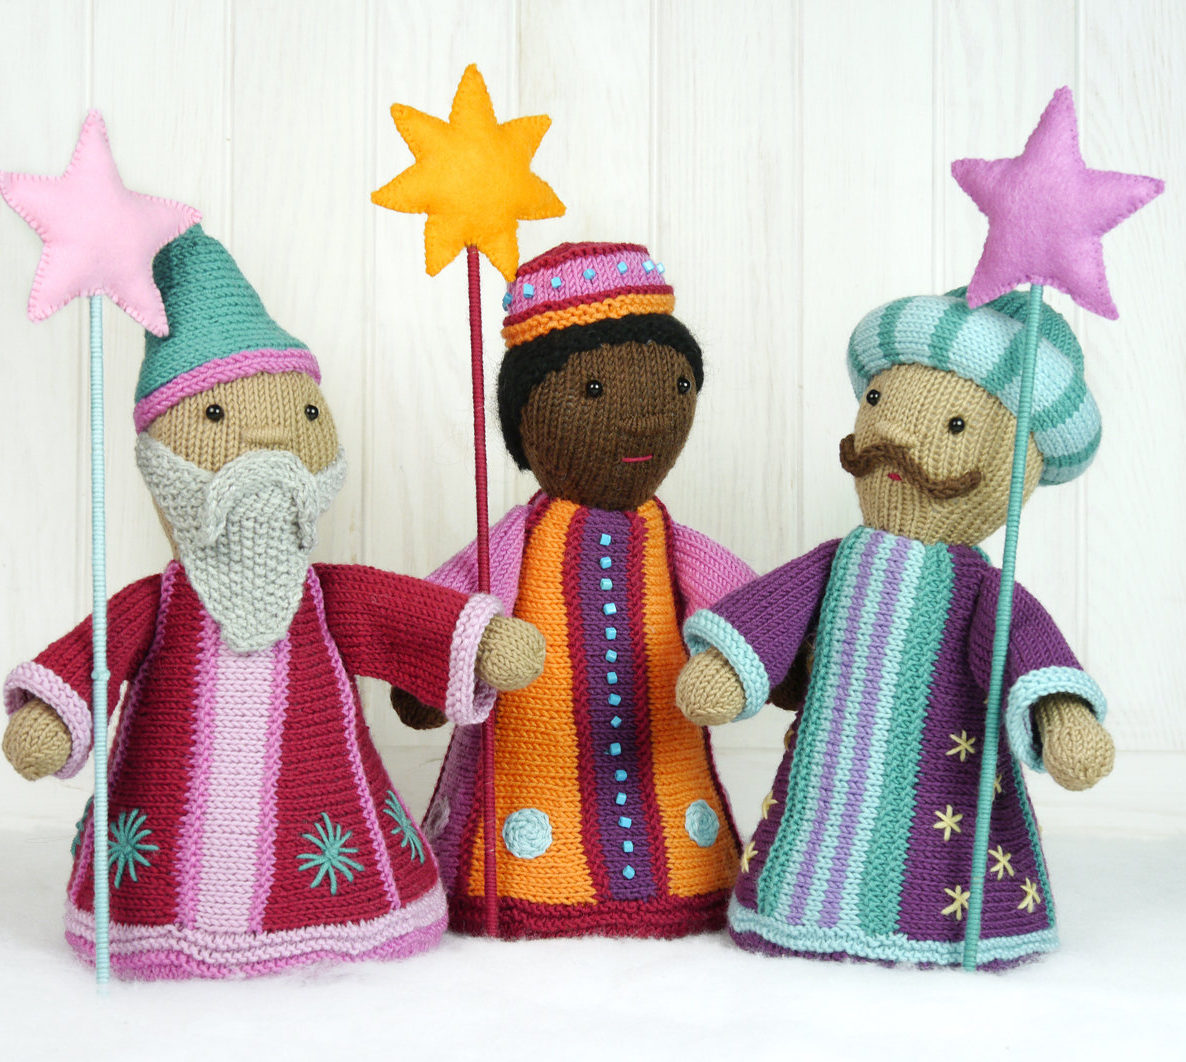 Knitting Pattern for Three Wise Men